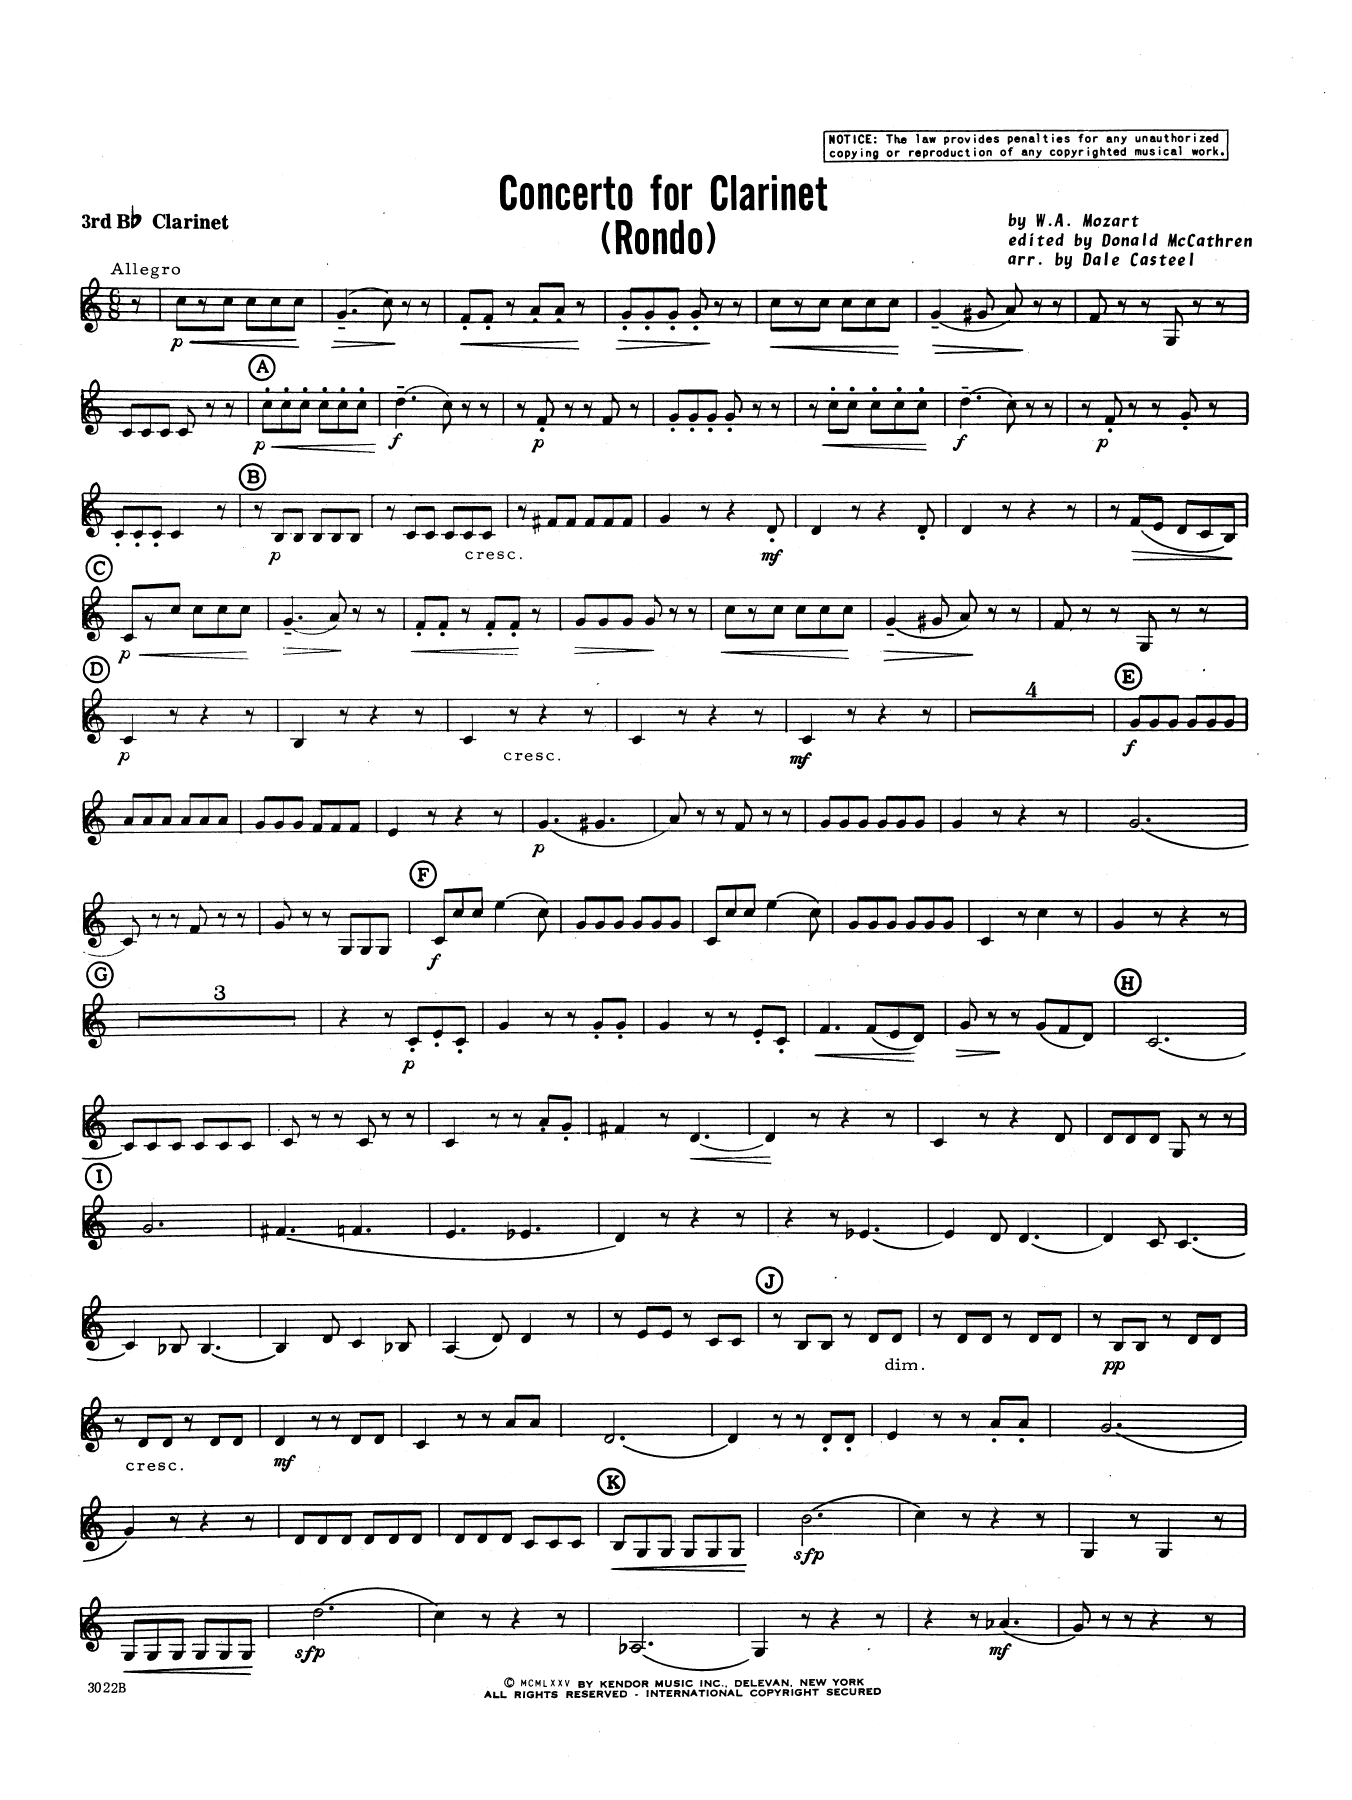 Donald McCathren and Dale Casteel Concerto For Clarinet - Rondo (3rd Movement) - K.622 - 3rd Bb Clarinet sheet music preview music notes and score for Concert Band including 3 page(s)